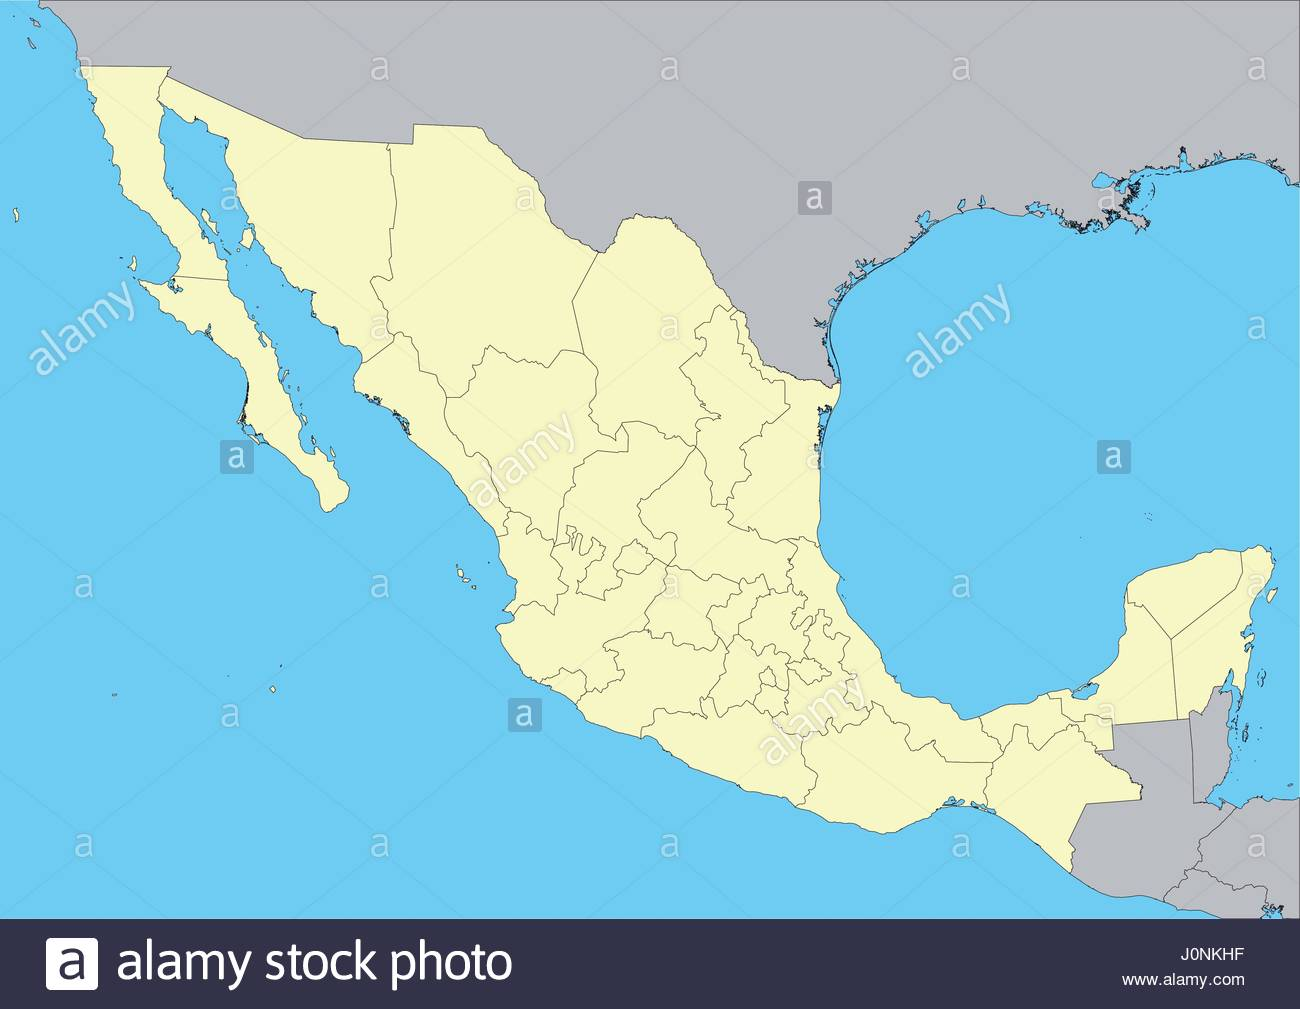 High Detailed Vector Map Of Mexico With States File Easy To Edit